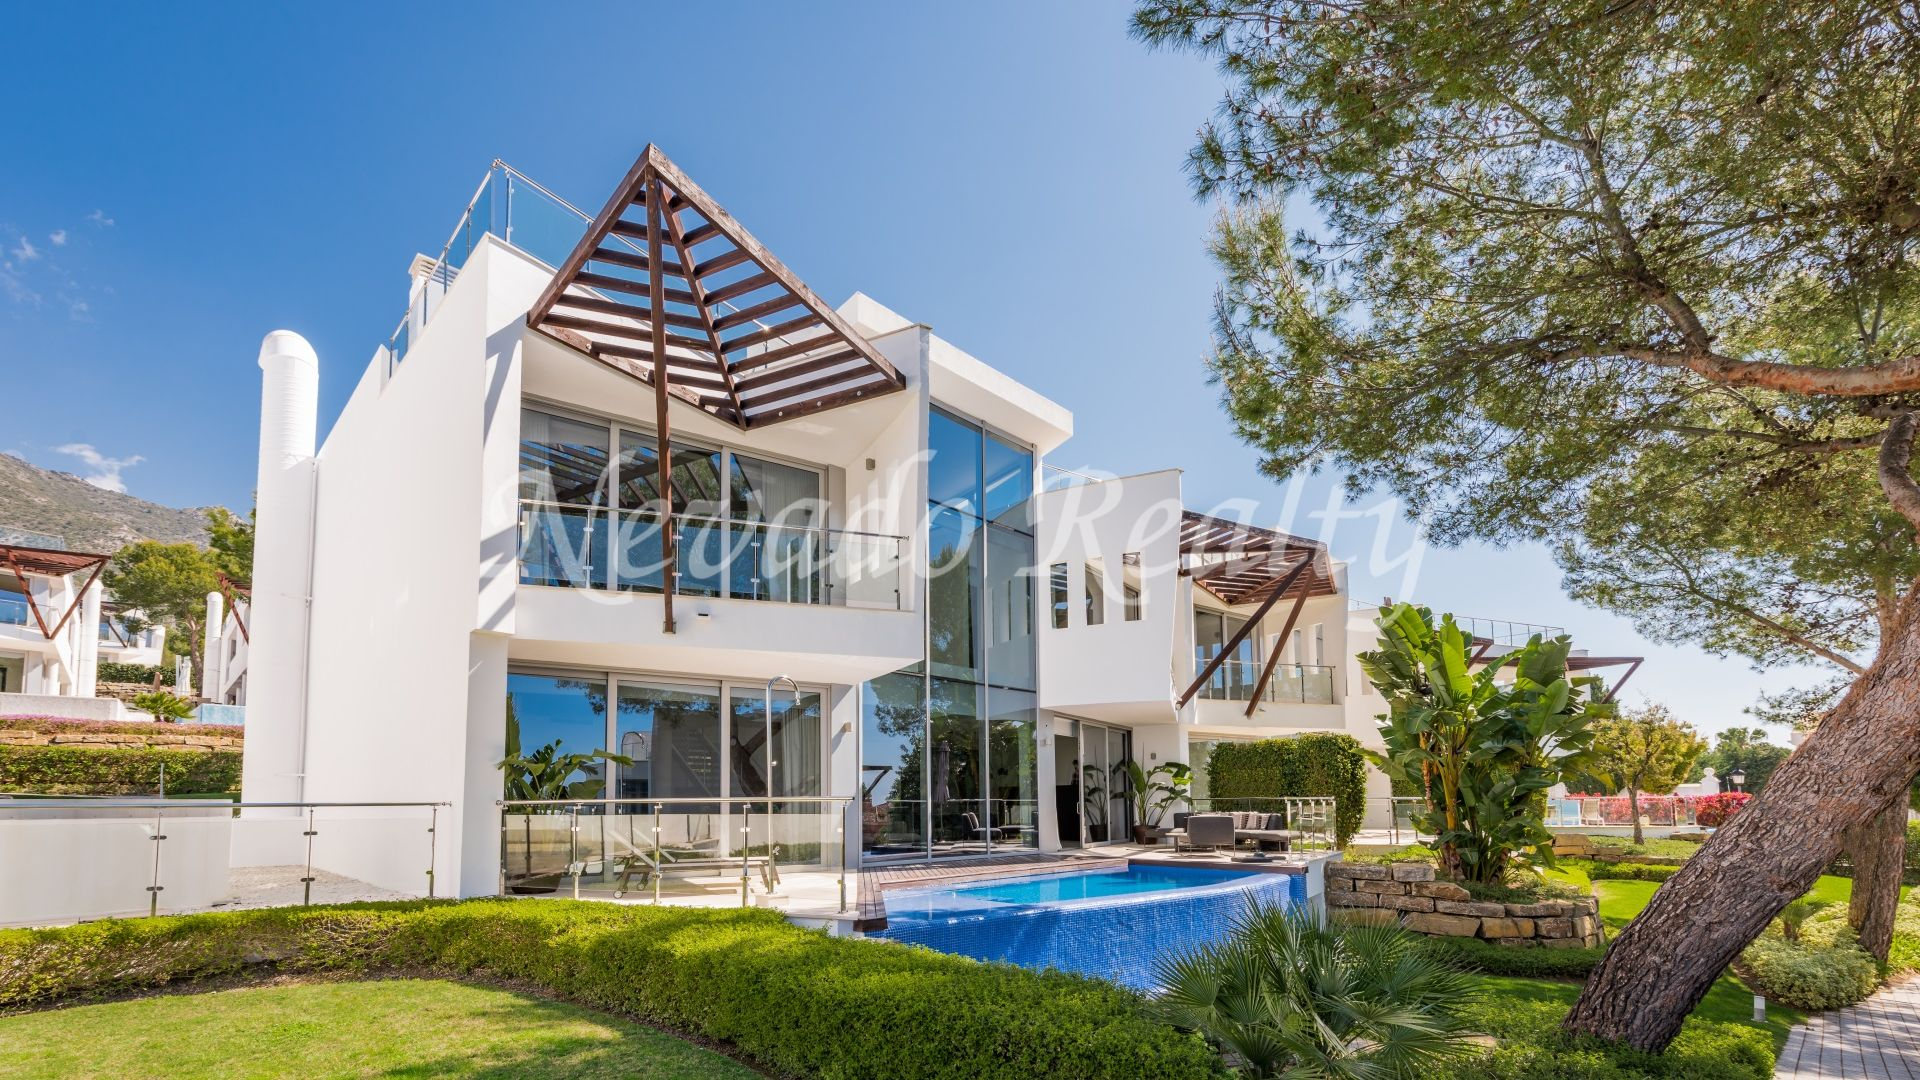 Stunning luxury townhouse for sale in Sierra Blanca Marbella